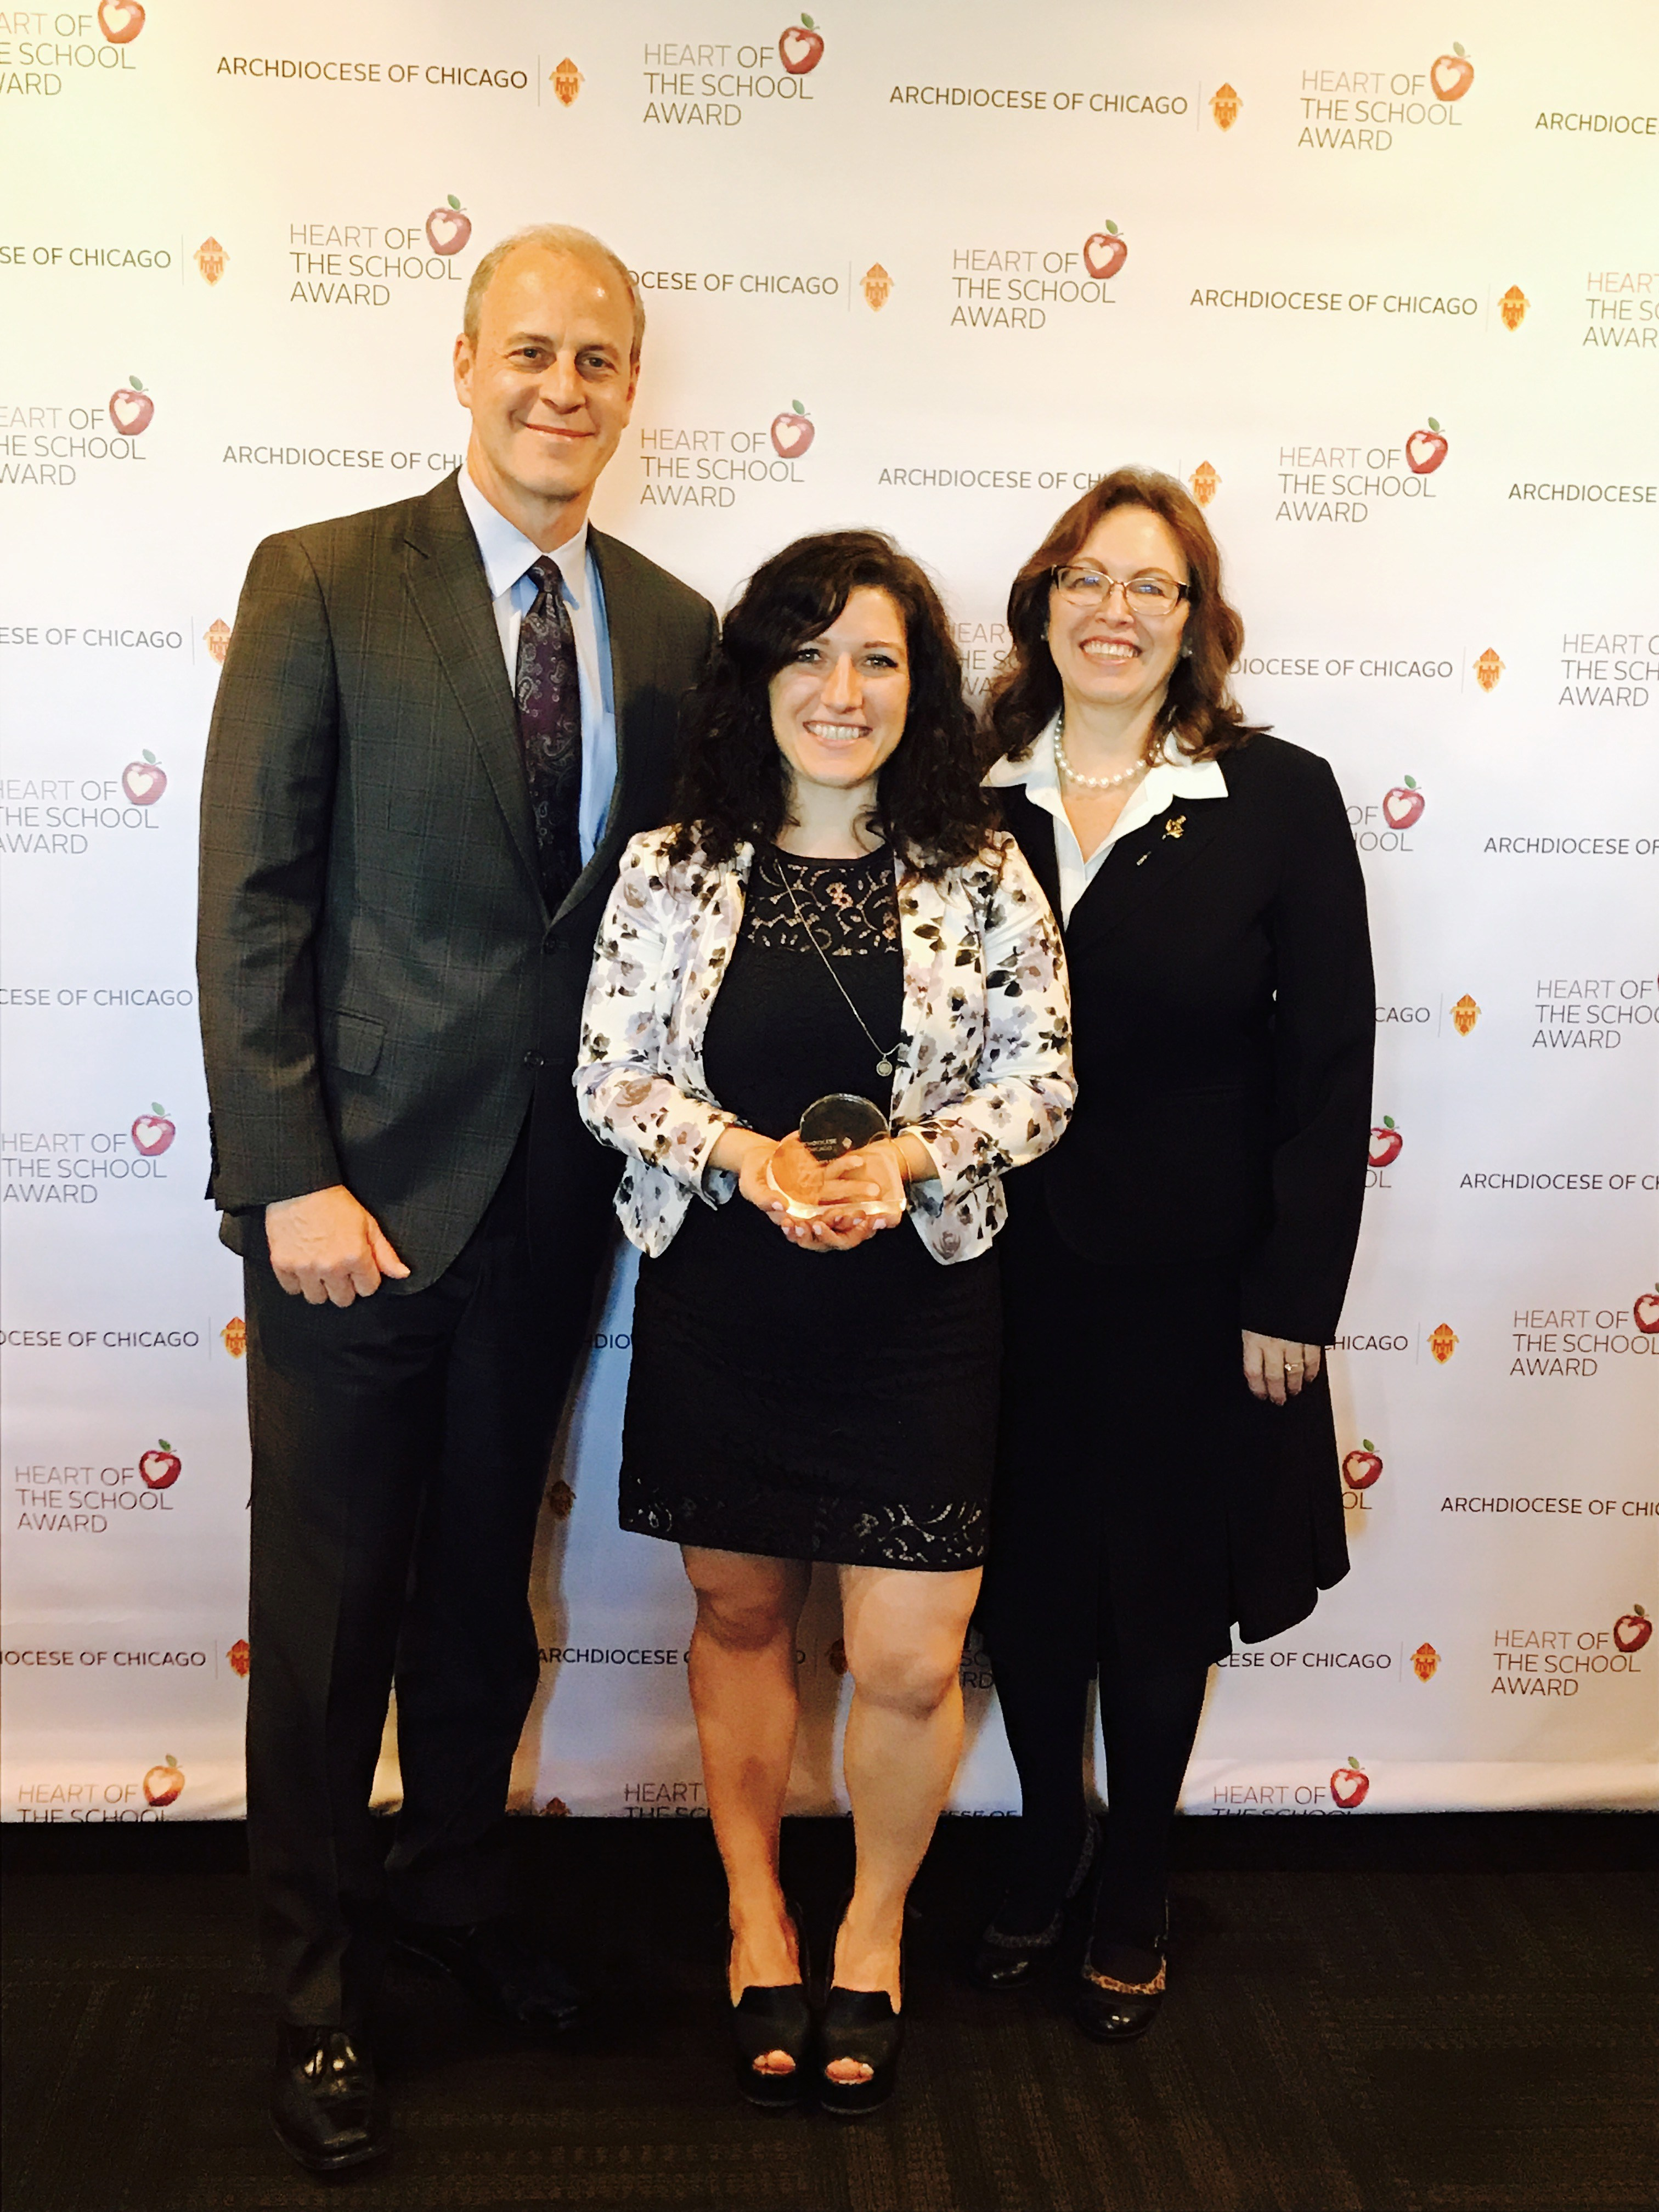 RLC Director honored by Archdiocese